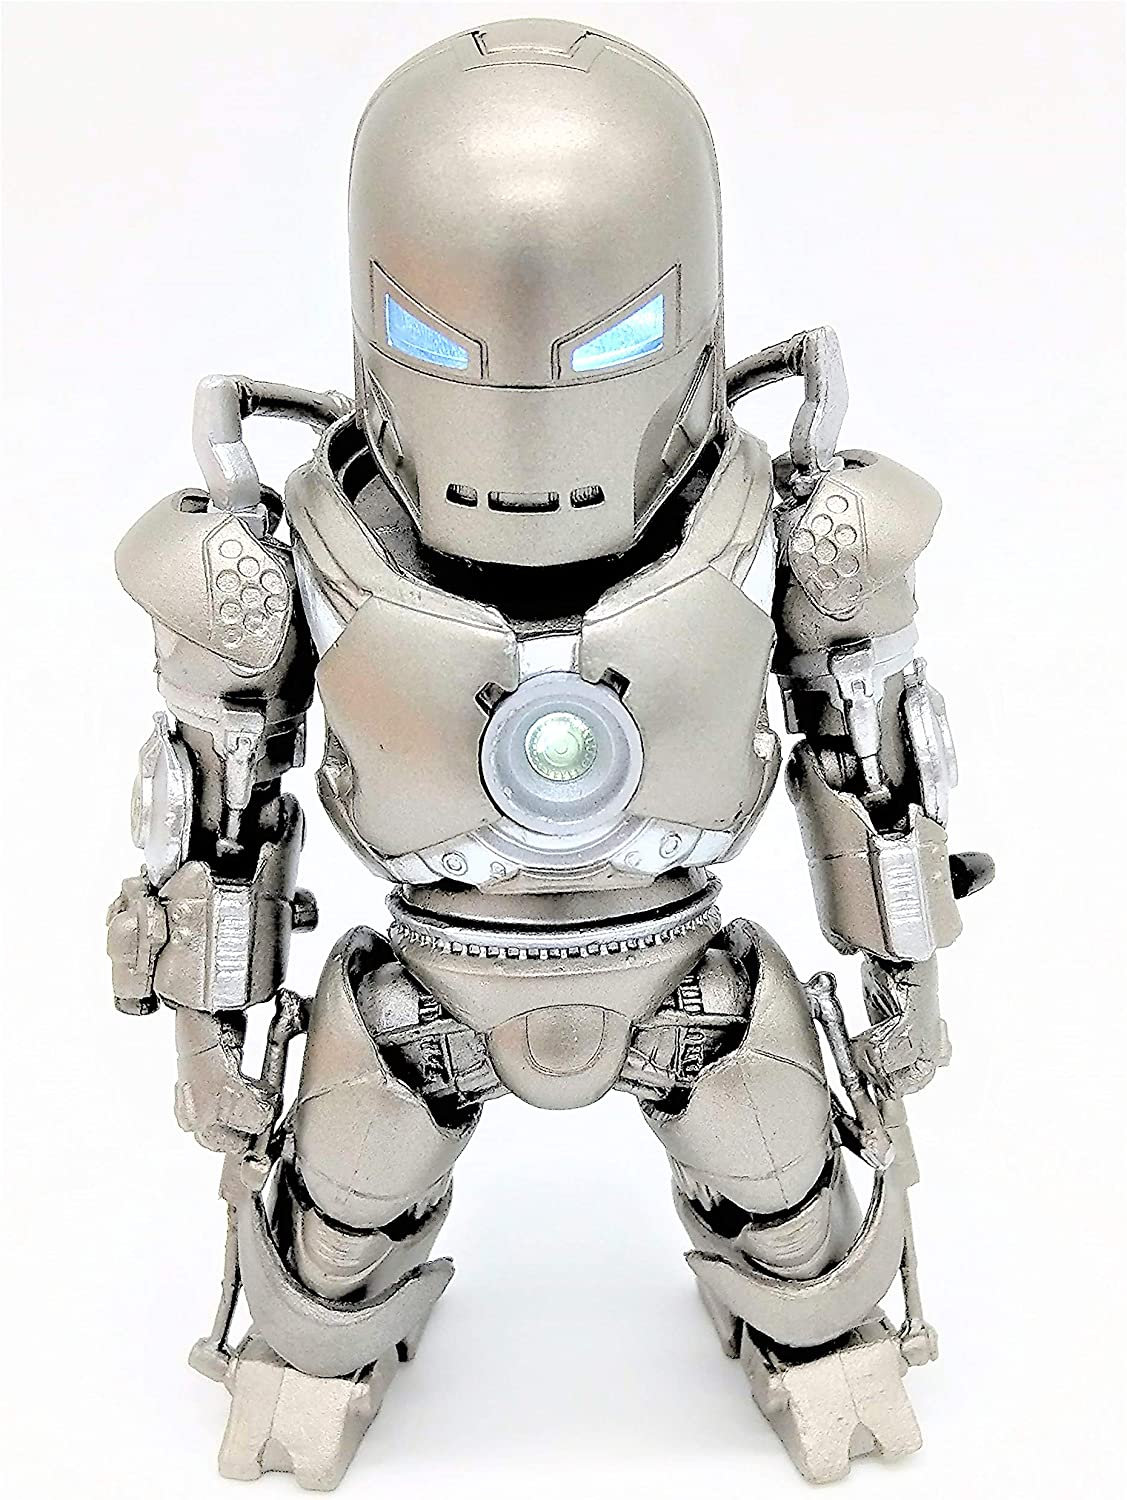 Prodigy Toys Silver Iron Man Action Figure Mark I with LED Arc Reactor - Ironman in its First Original Form! (Batteries Included)